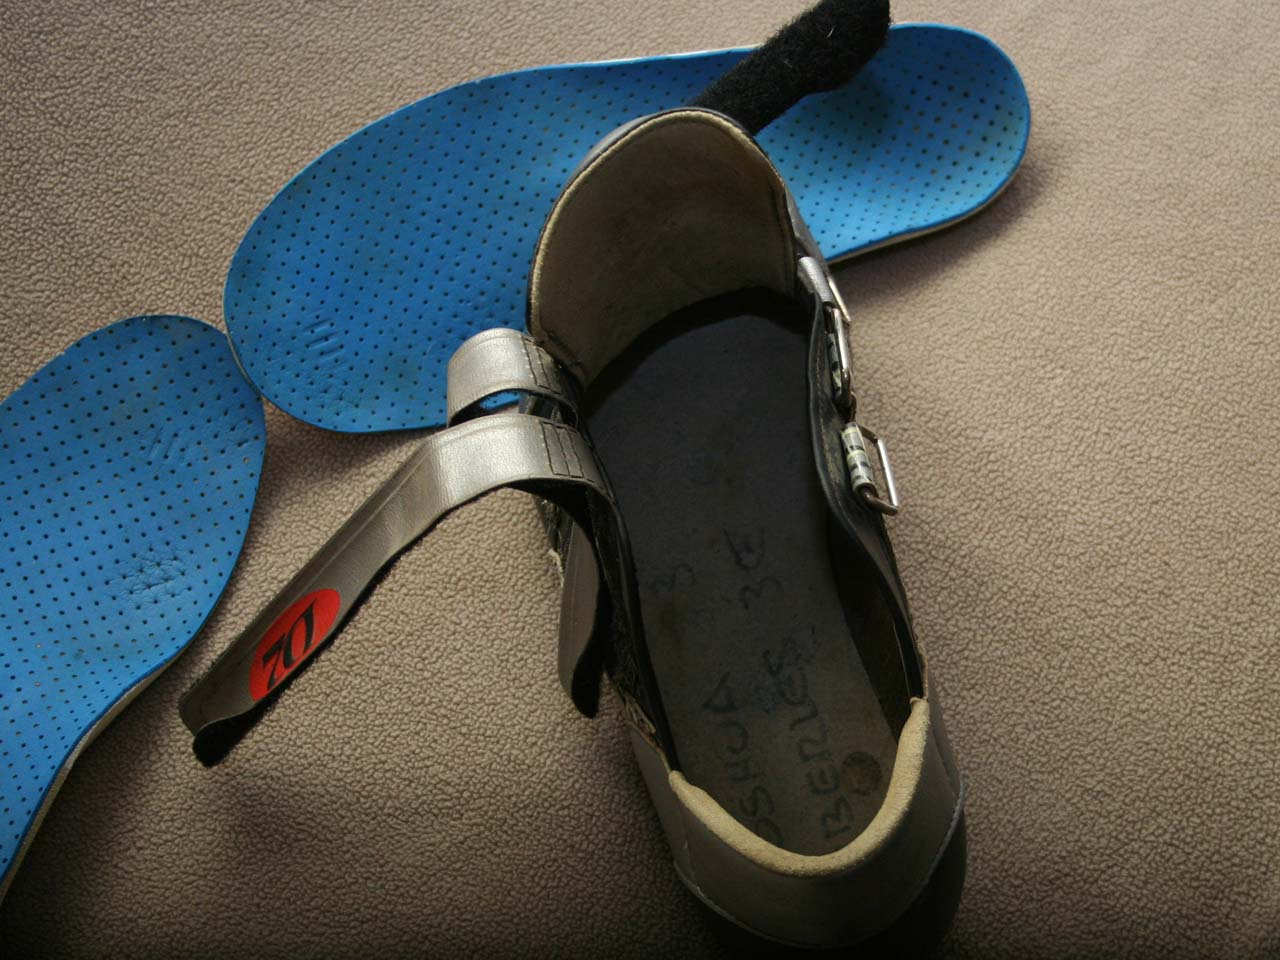 The fibrous insoles add polyethylene plastic that adds stiffness but still flexes ©Josh Liberles